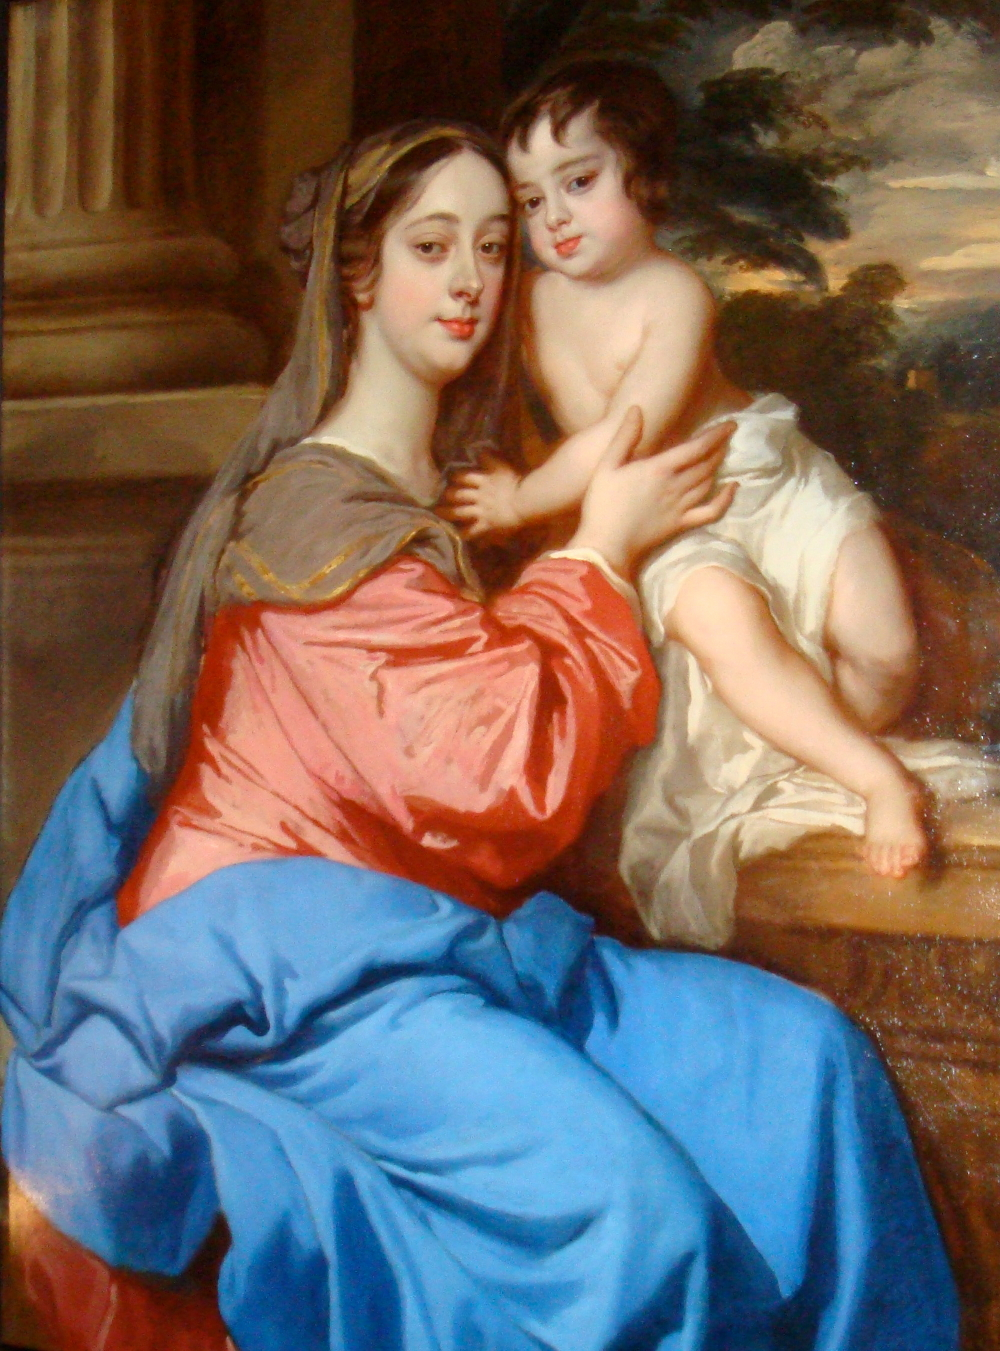 Painting of woman with child.